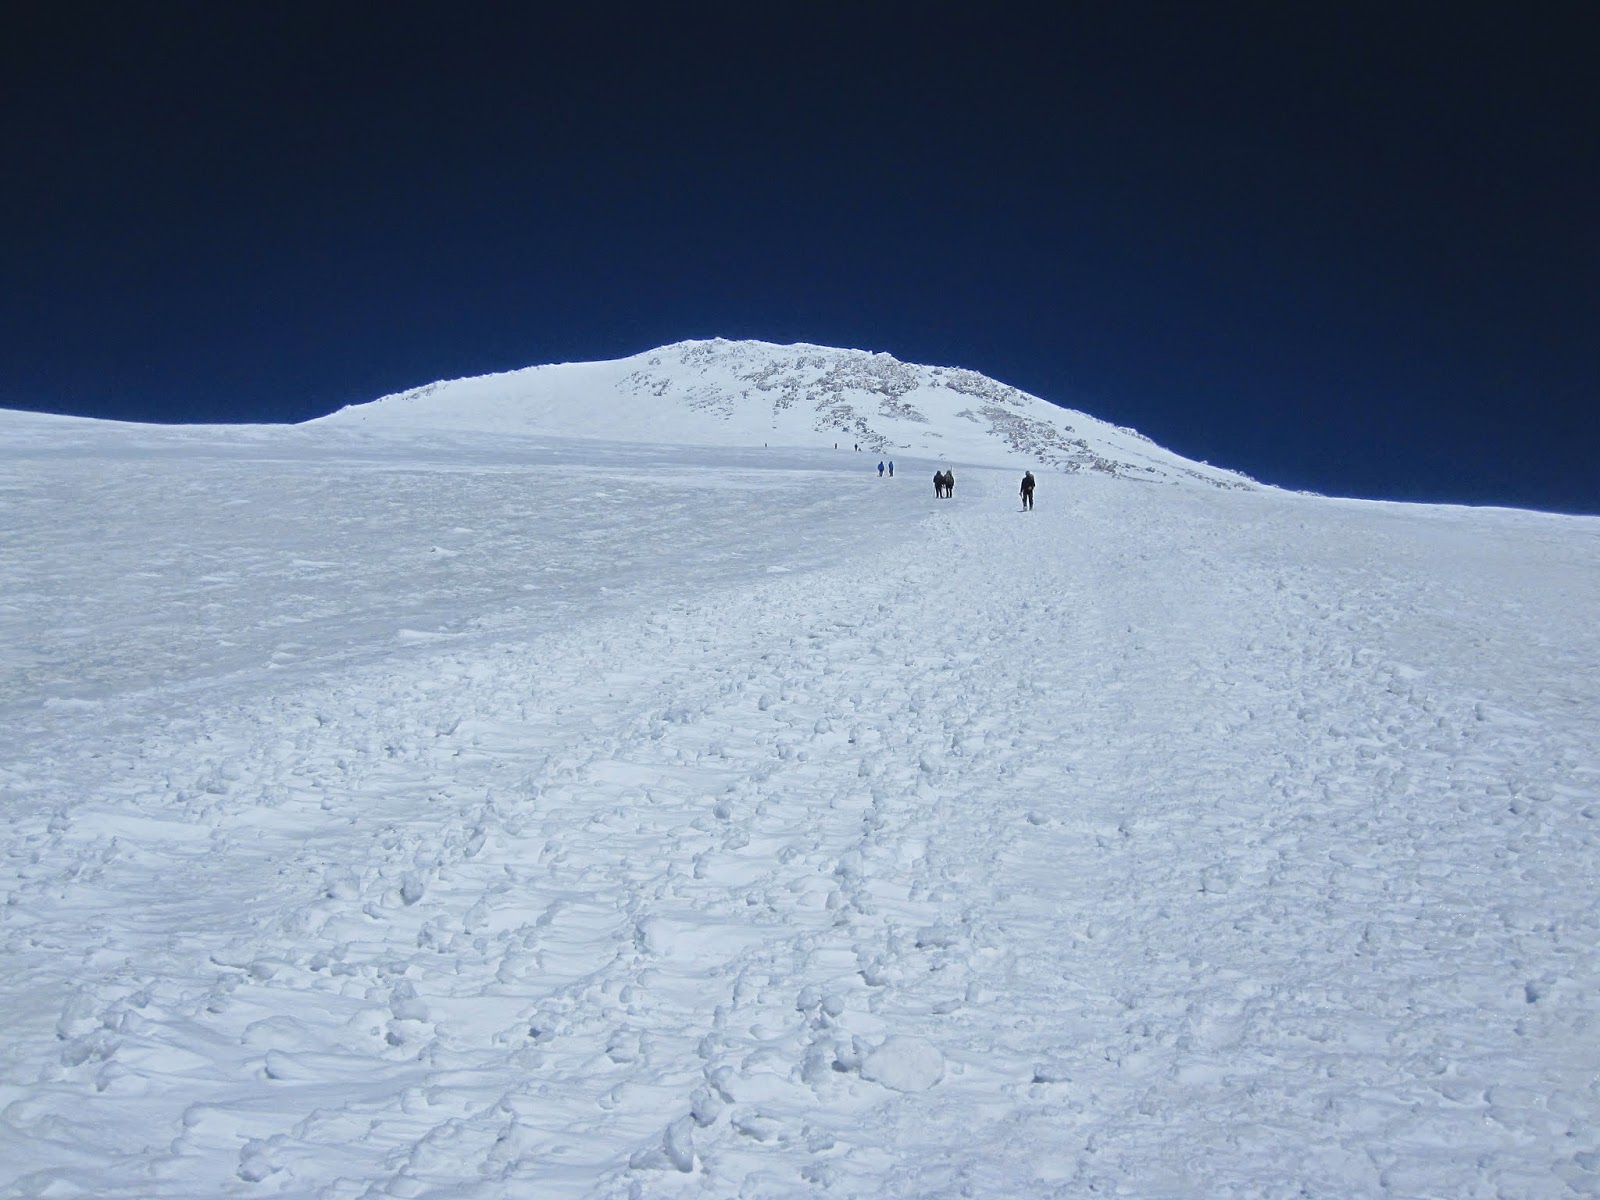 Standard South Route up Mount Elbrus